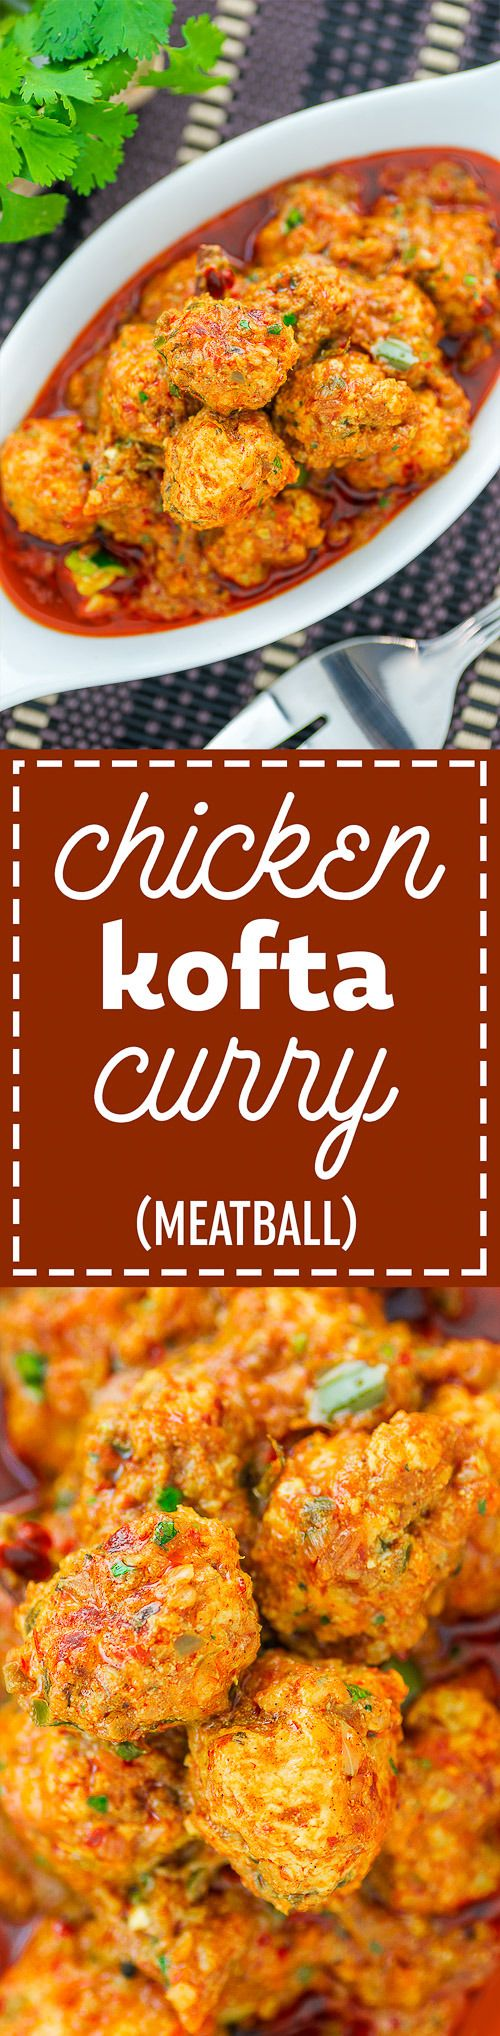 Chicken Kofta Curry is a spicy indian dish. Find the recipe here.